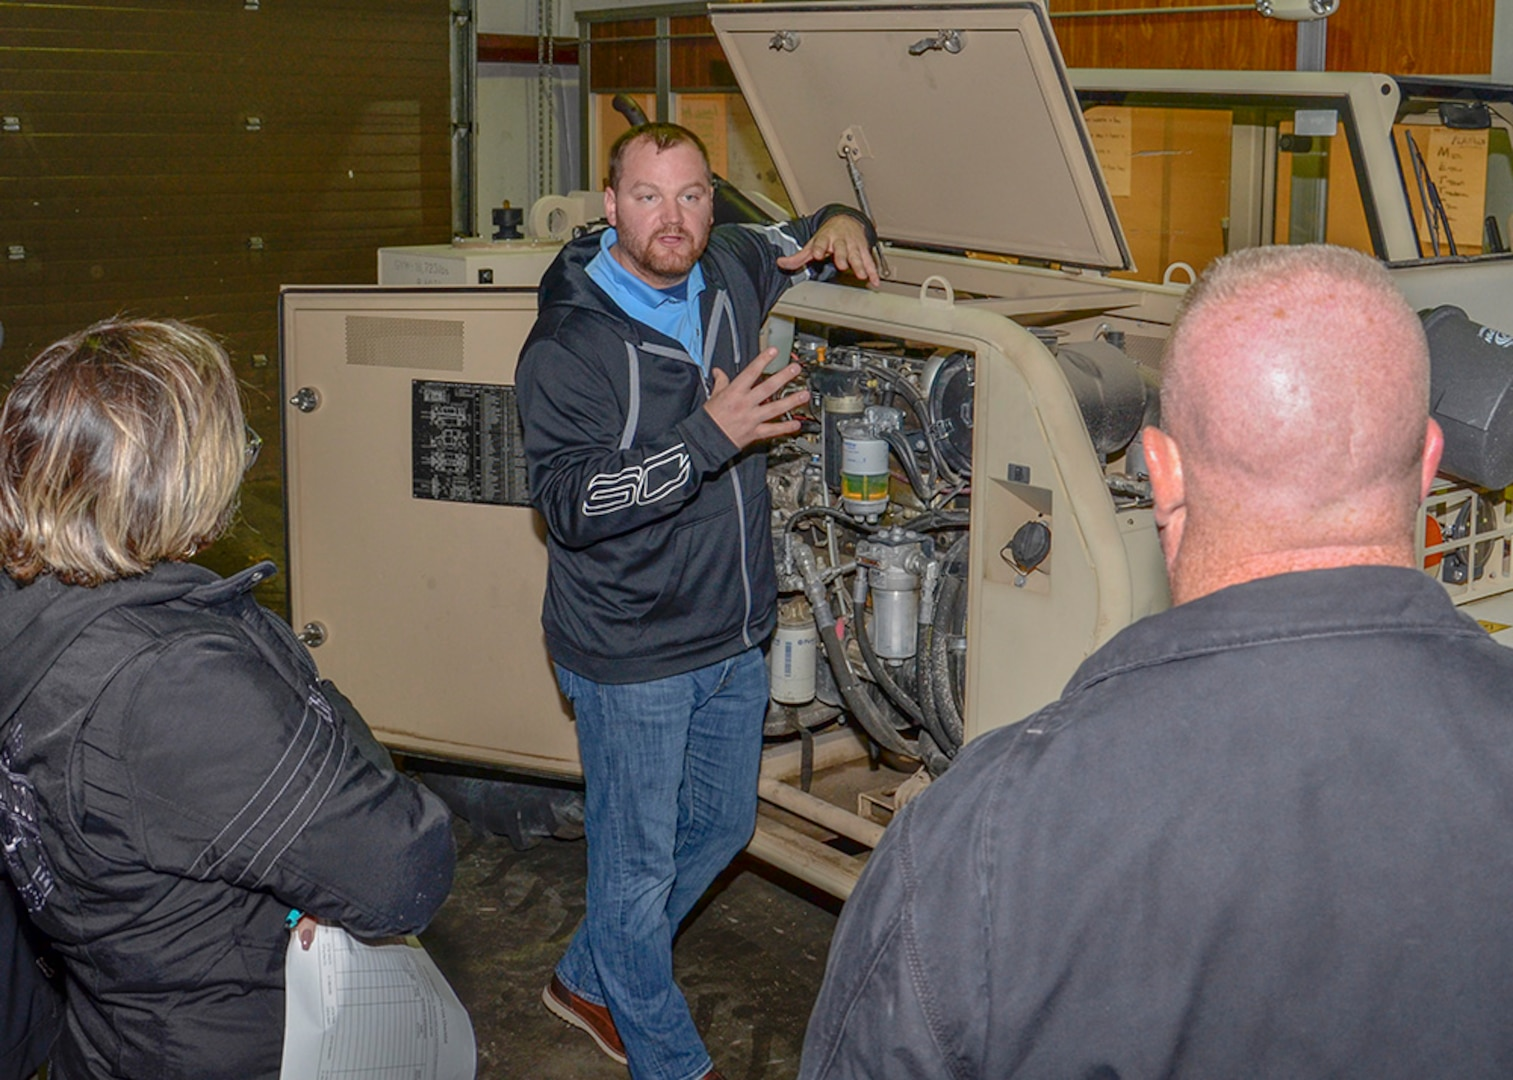 Tim Zweng instructs the instructors on proper material handling equipment preventative maintenance check procedures during the four-day MHE Safety Summit in Battle Creek, Michigan, Oct. 22-25.